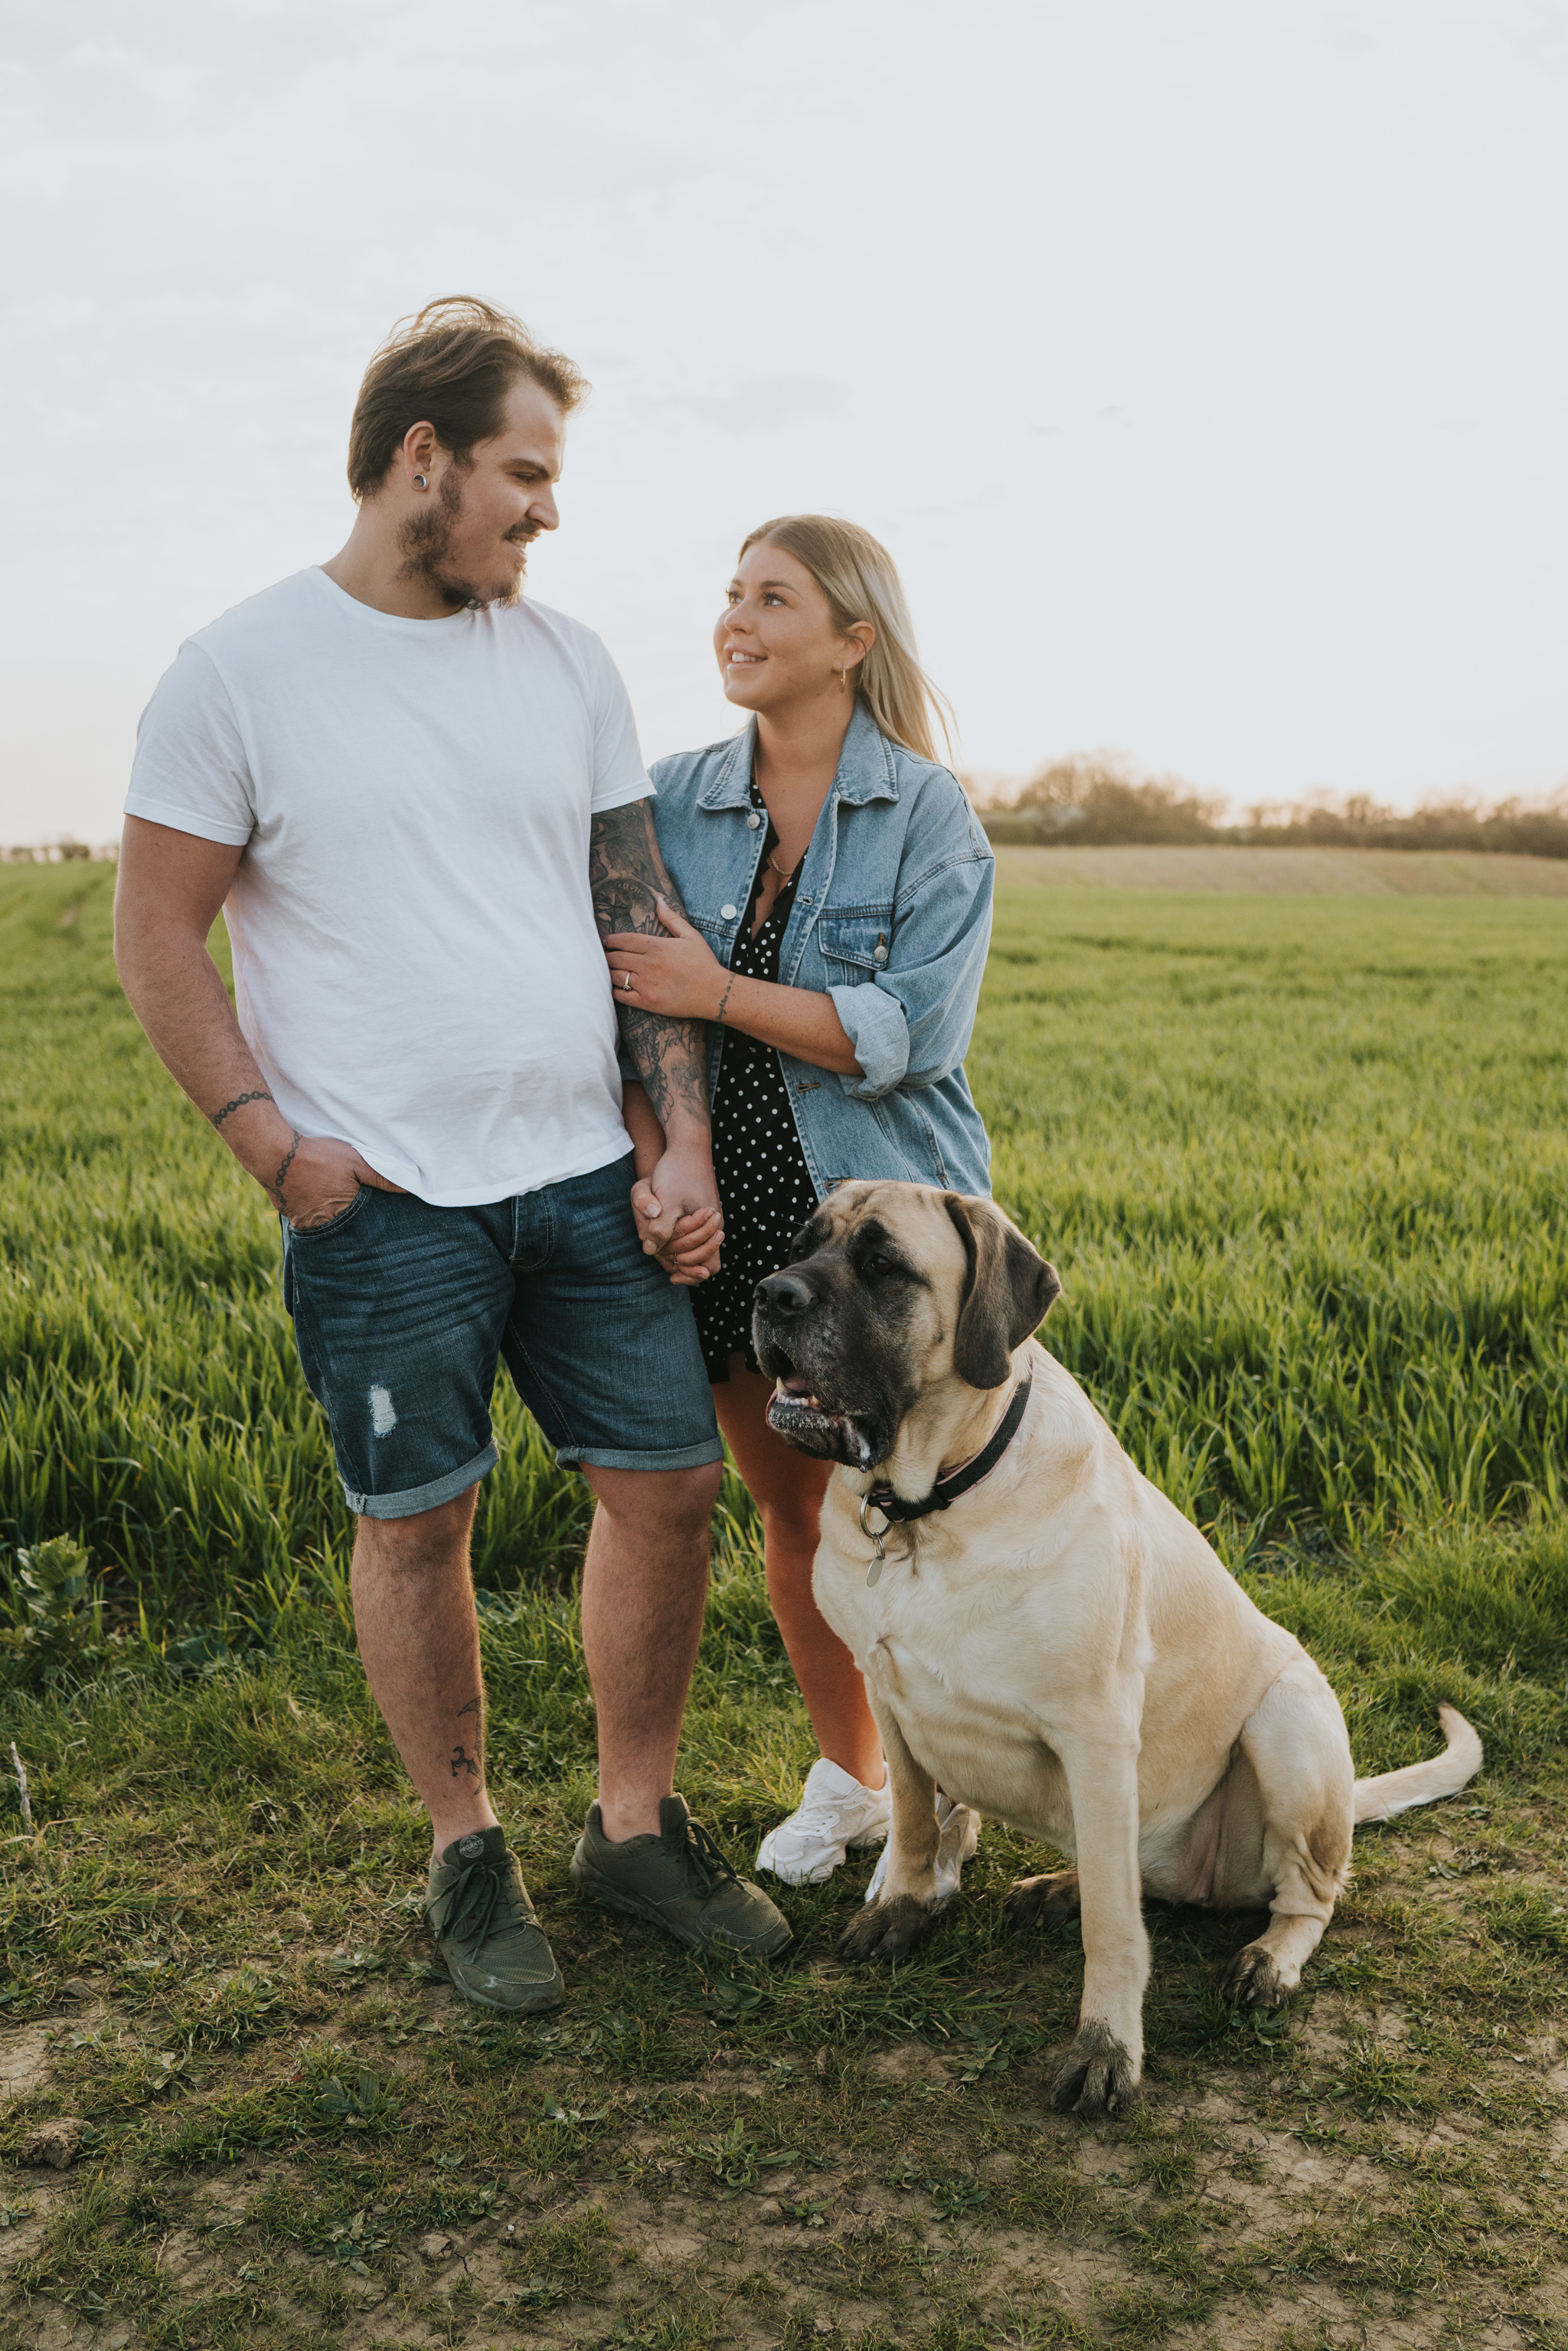 chloe-dan-pre-wedding-engagement-session-countryside-grace-elizabeth-colchester-essex-alternative-wedding-lifestyle-photographer-suffolk-norfolk-devon (39 of 50).jpg